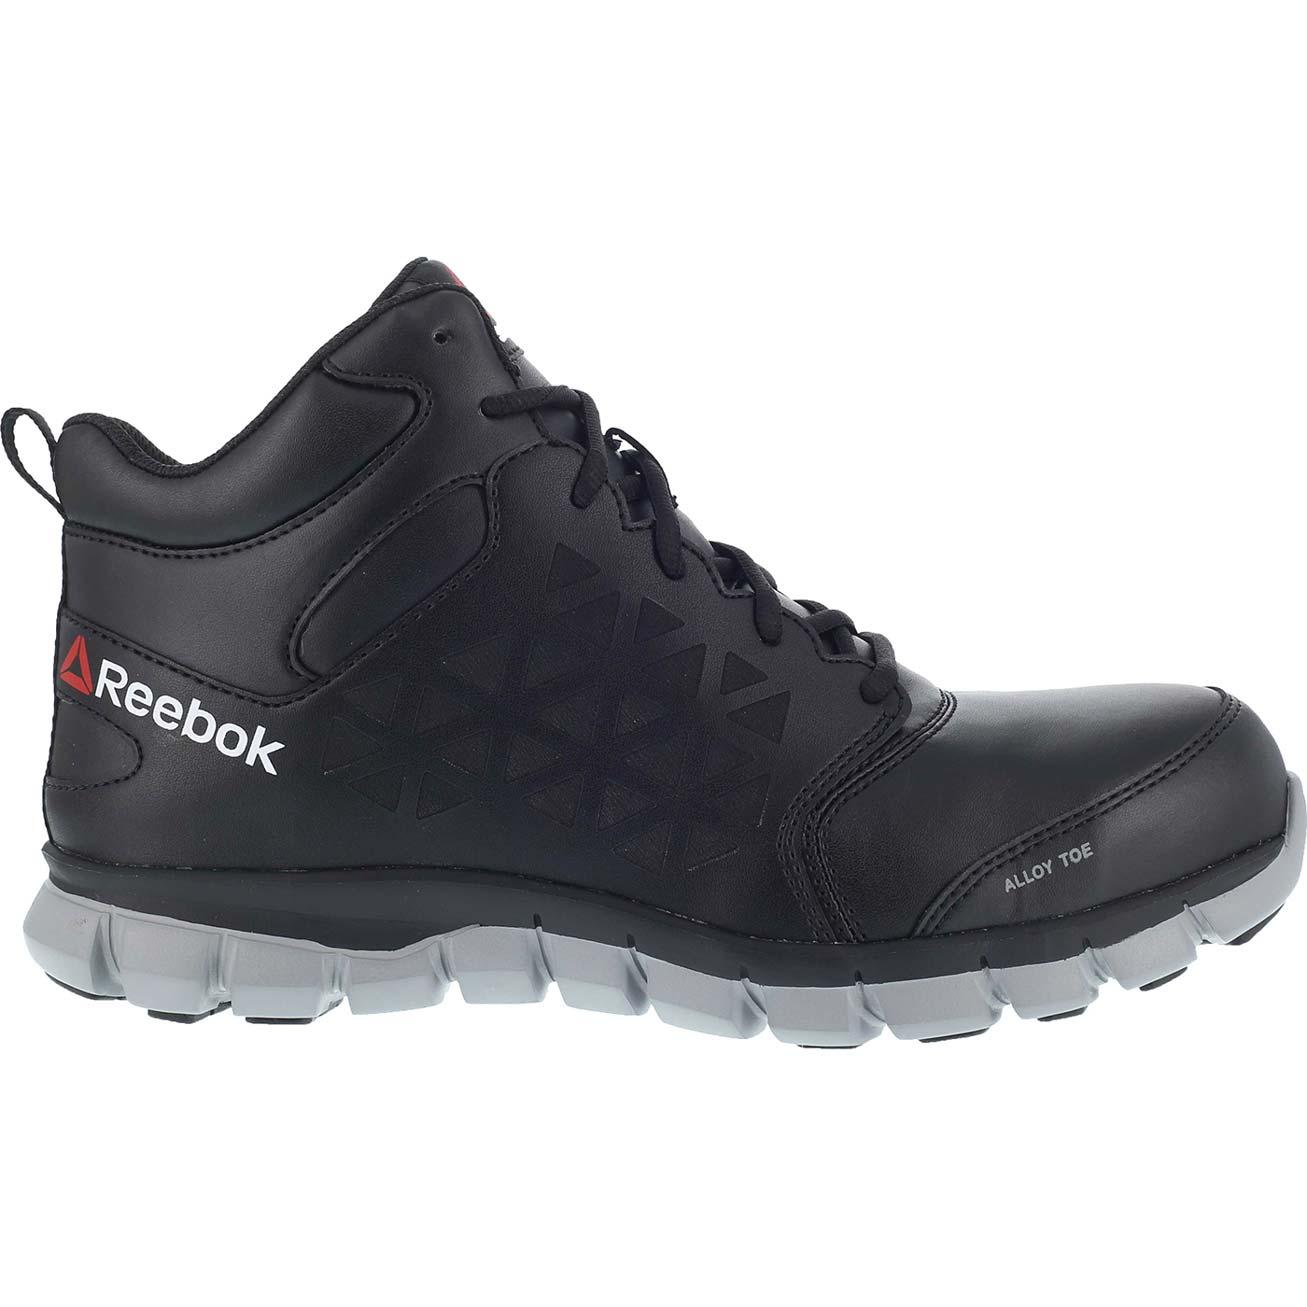 819134a16b2 Loading zoom. Reebok Sublite Cushion Work Alloy Toe Internal Met Guard Work  Athletic Shoe